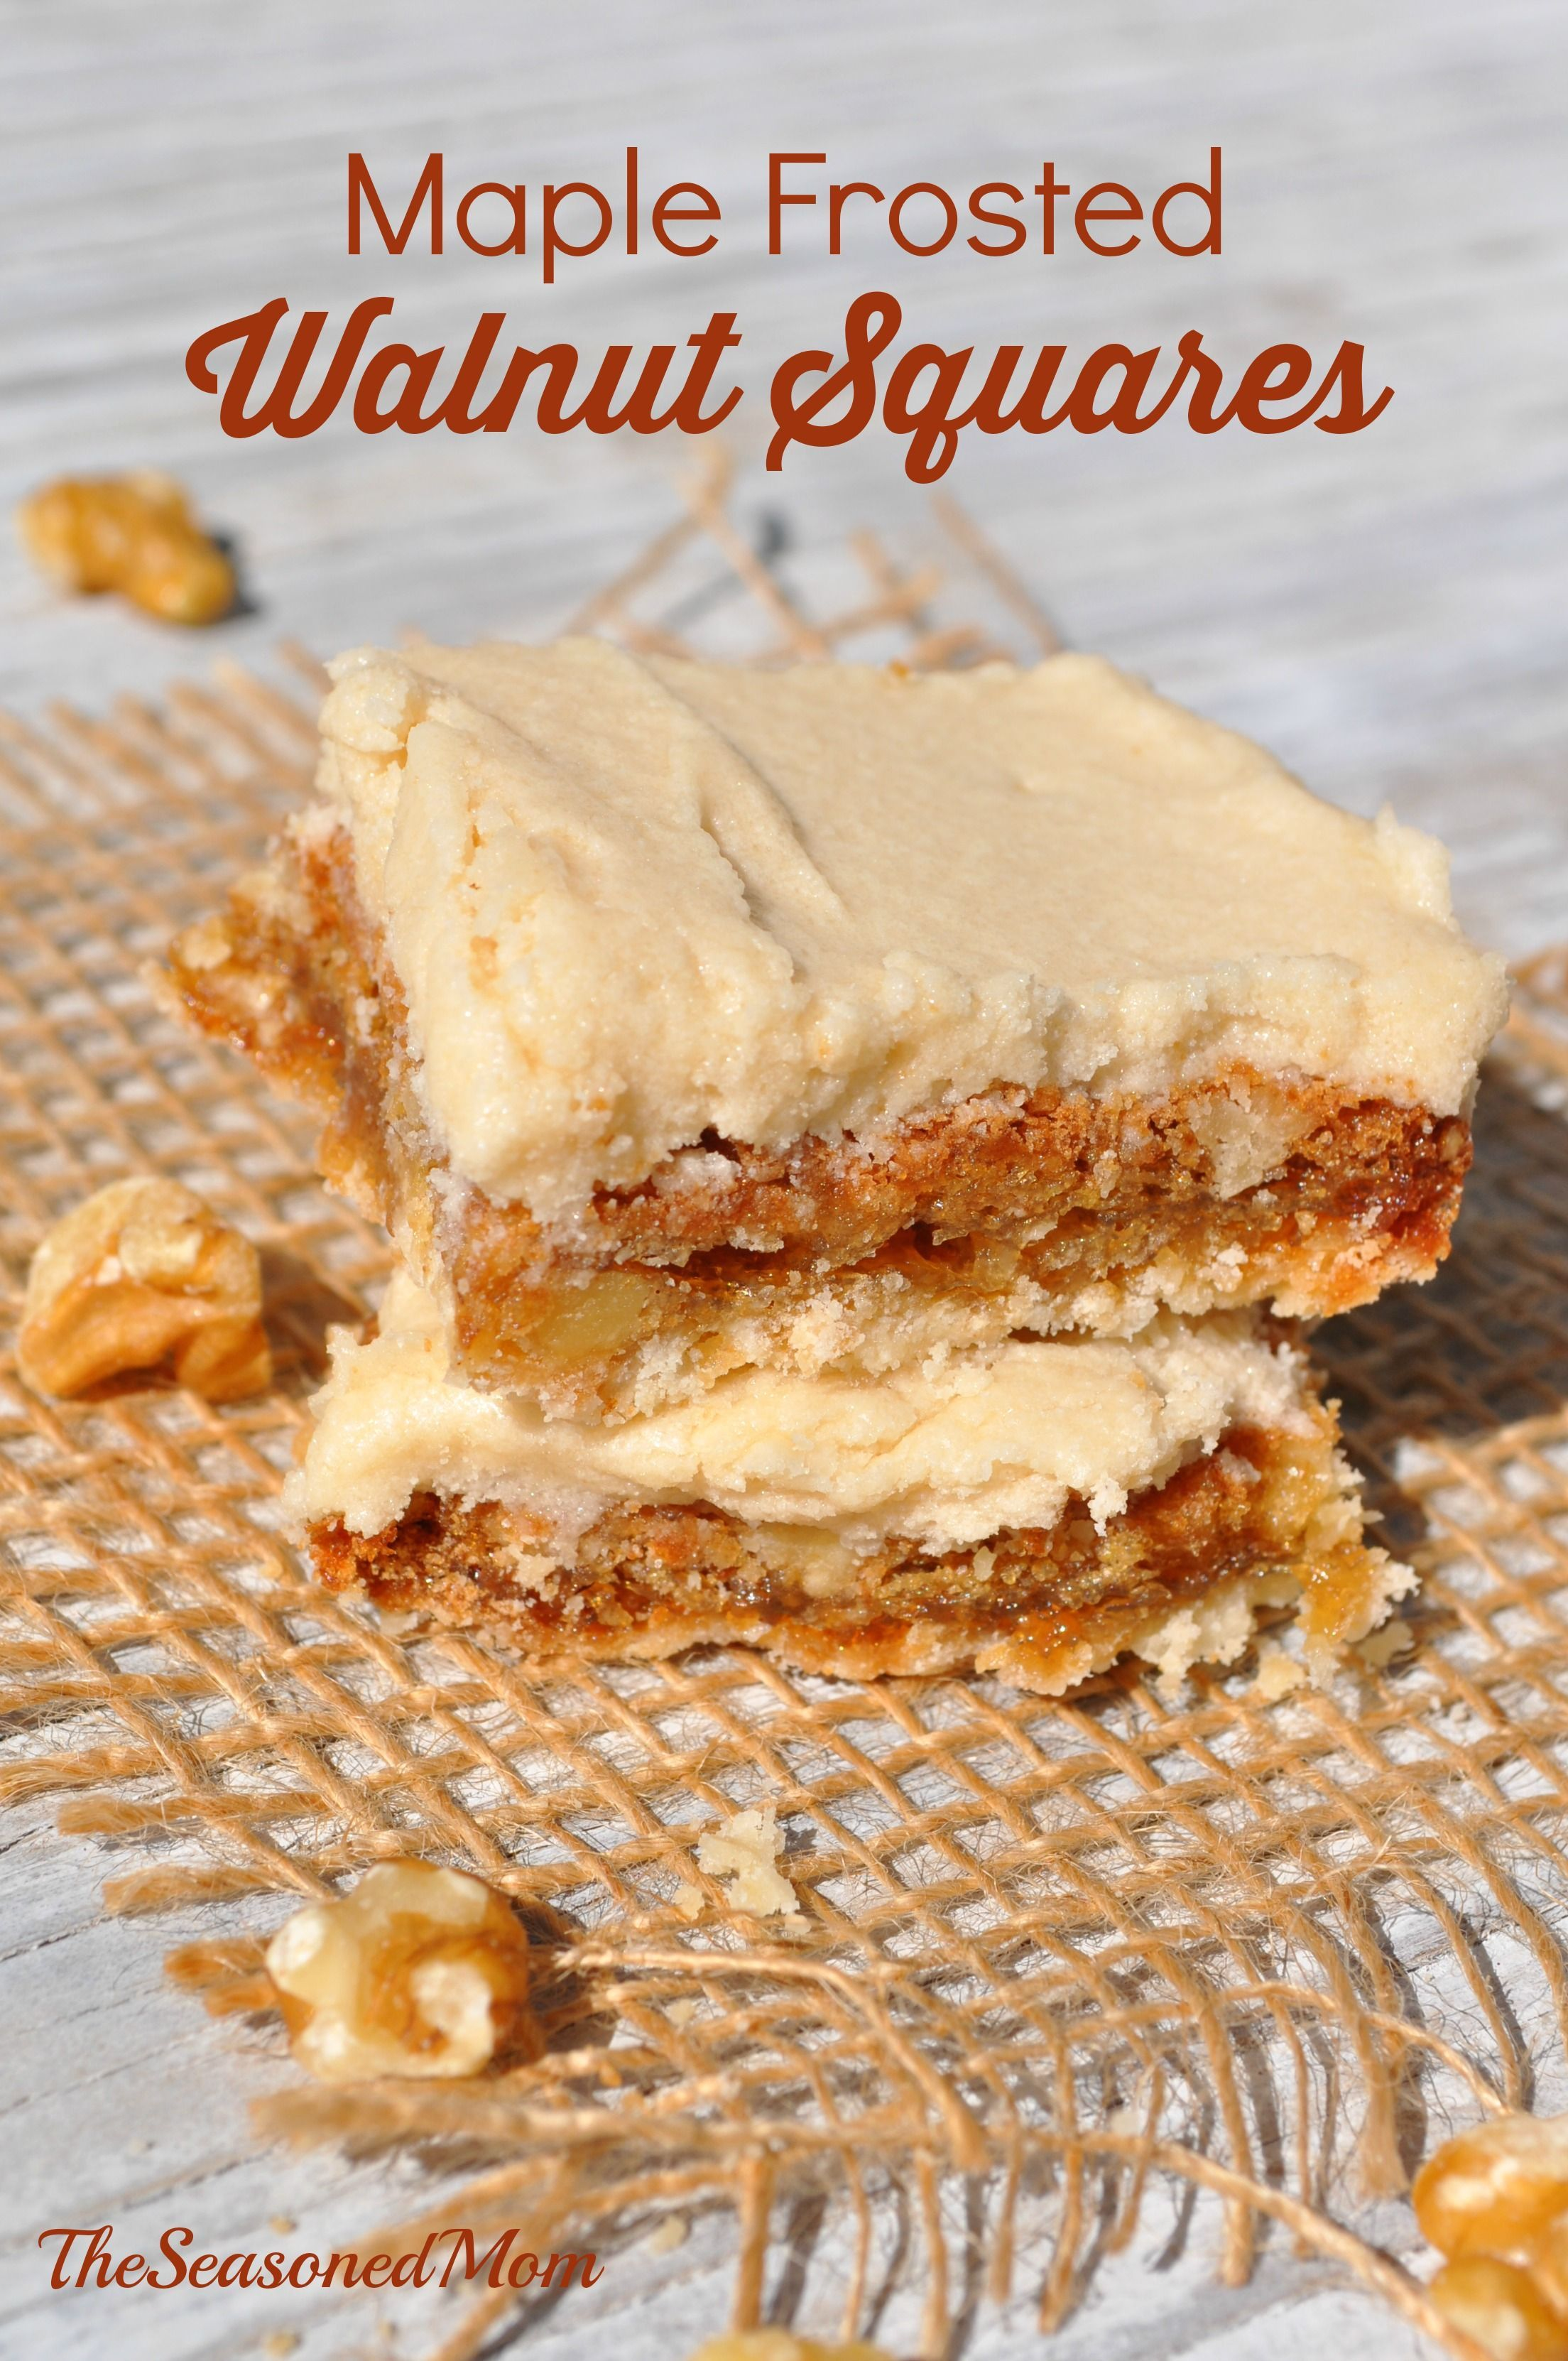 Frosted Walnut Bars Maple Frosted Walnut Squares: a shortbread crust, chewy, buttery nut filling, and a rich maple frosting!Maple Frosted Walnut Squares: a shortbread crust, chewy, buttery nut filling, and a rich maple frosting!